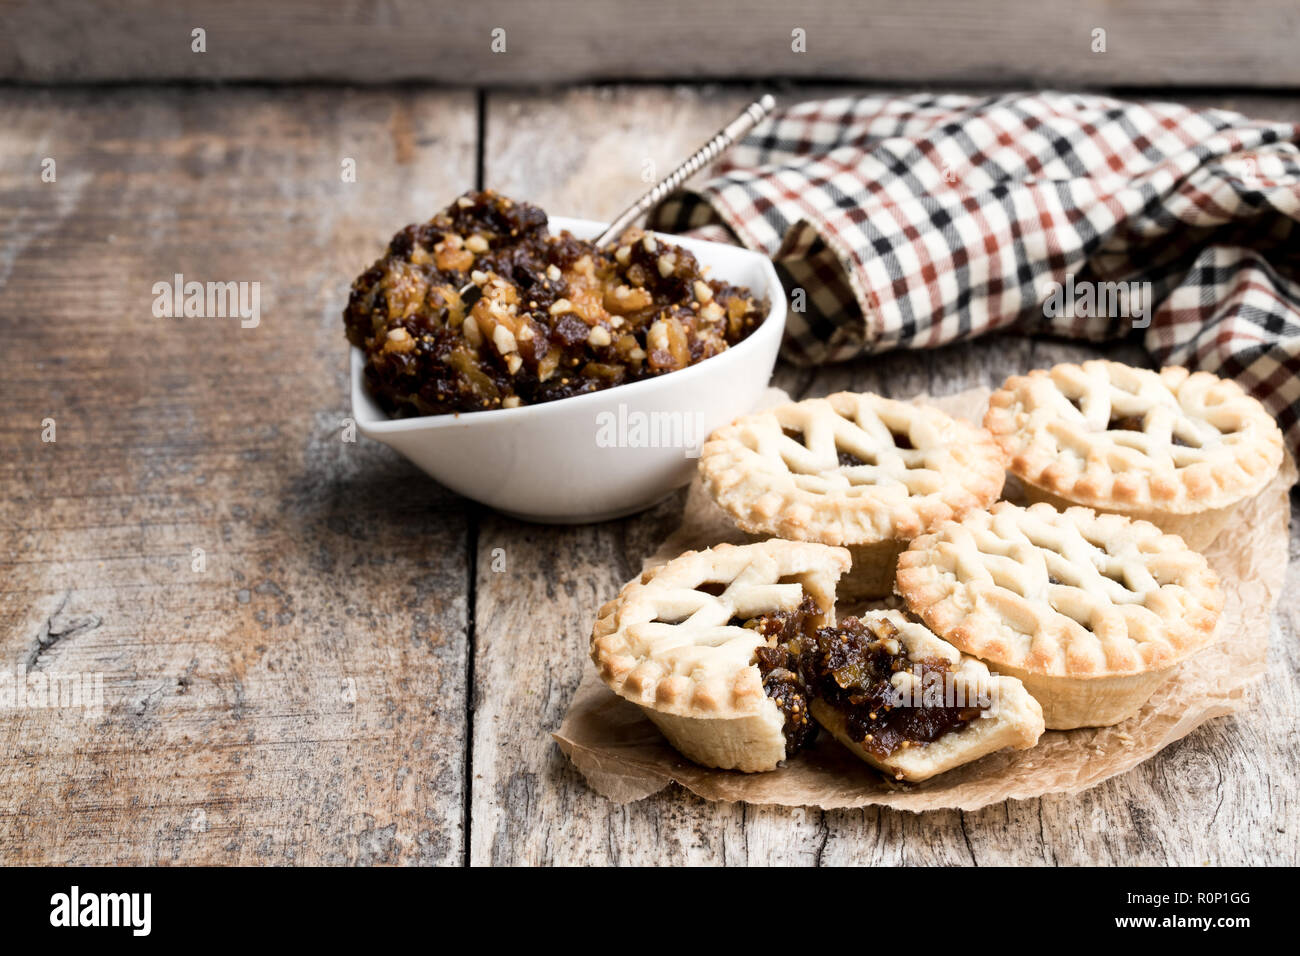 Mince  pie group on wooden table - Stock Image